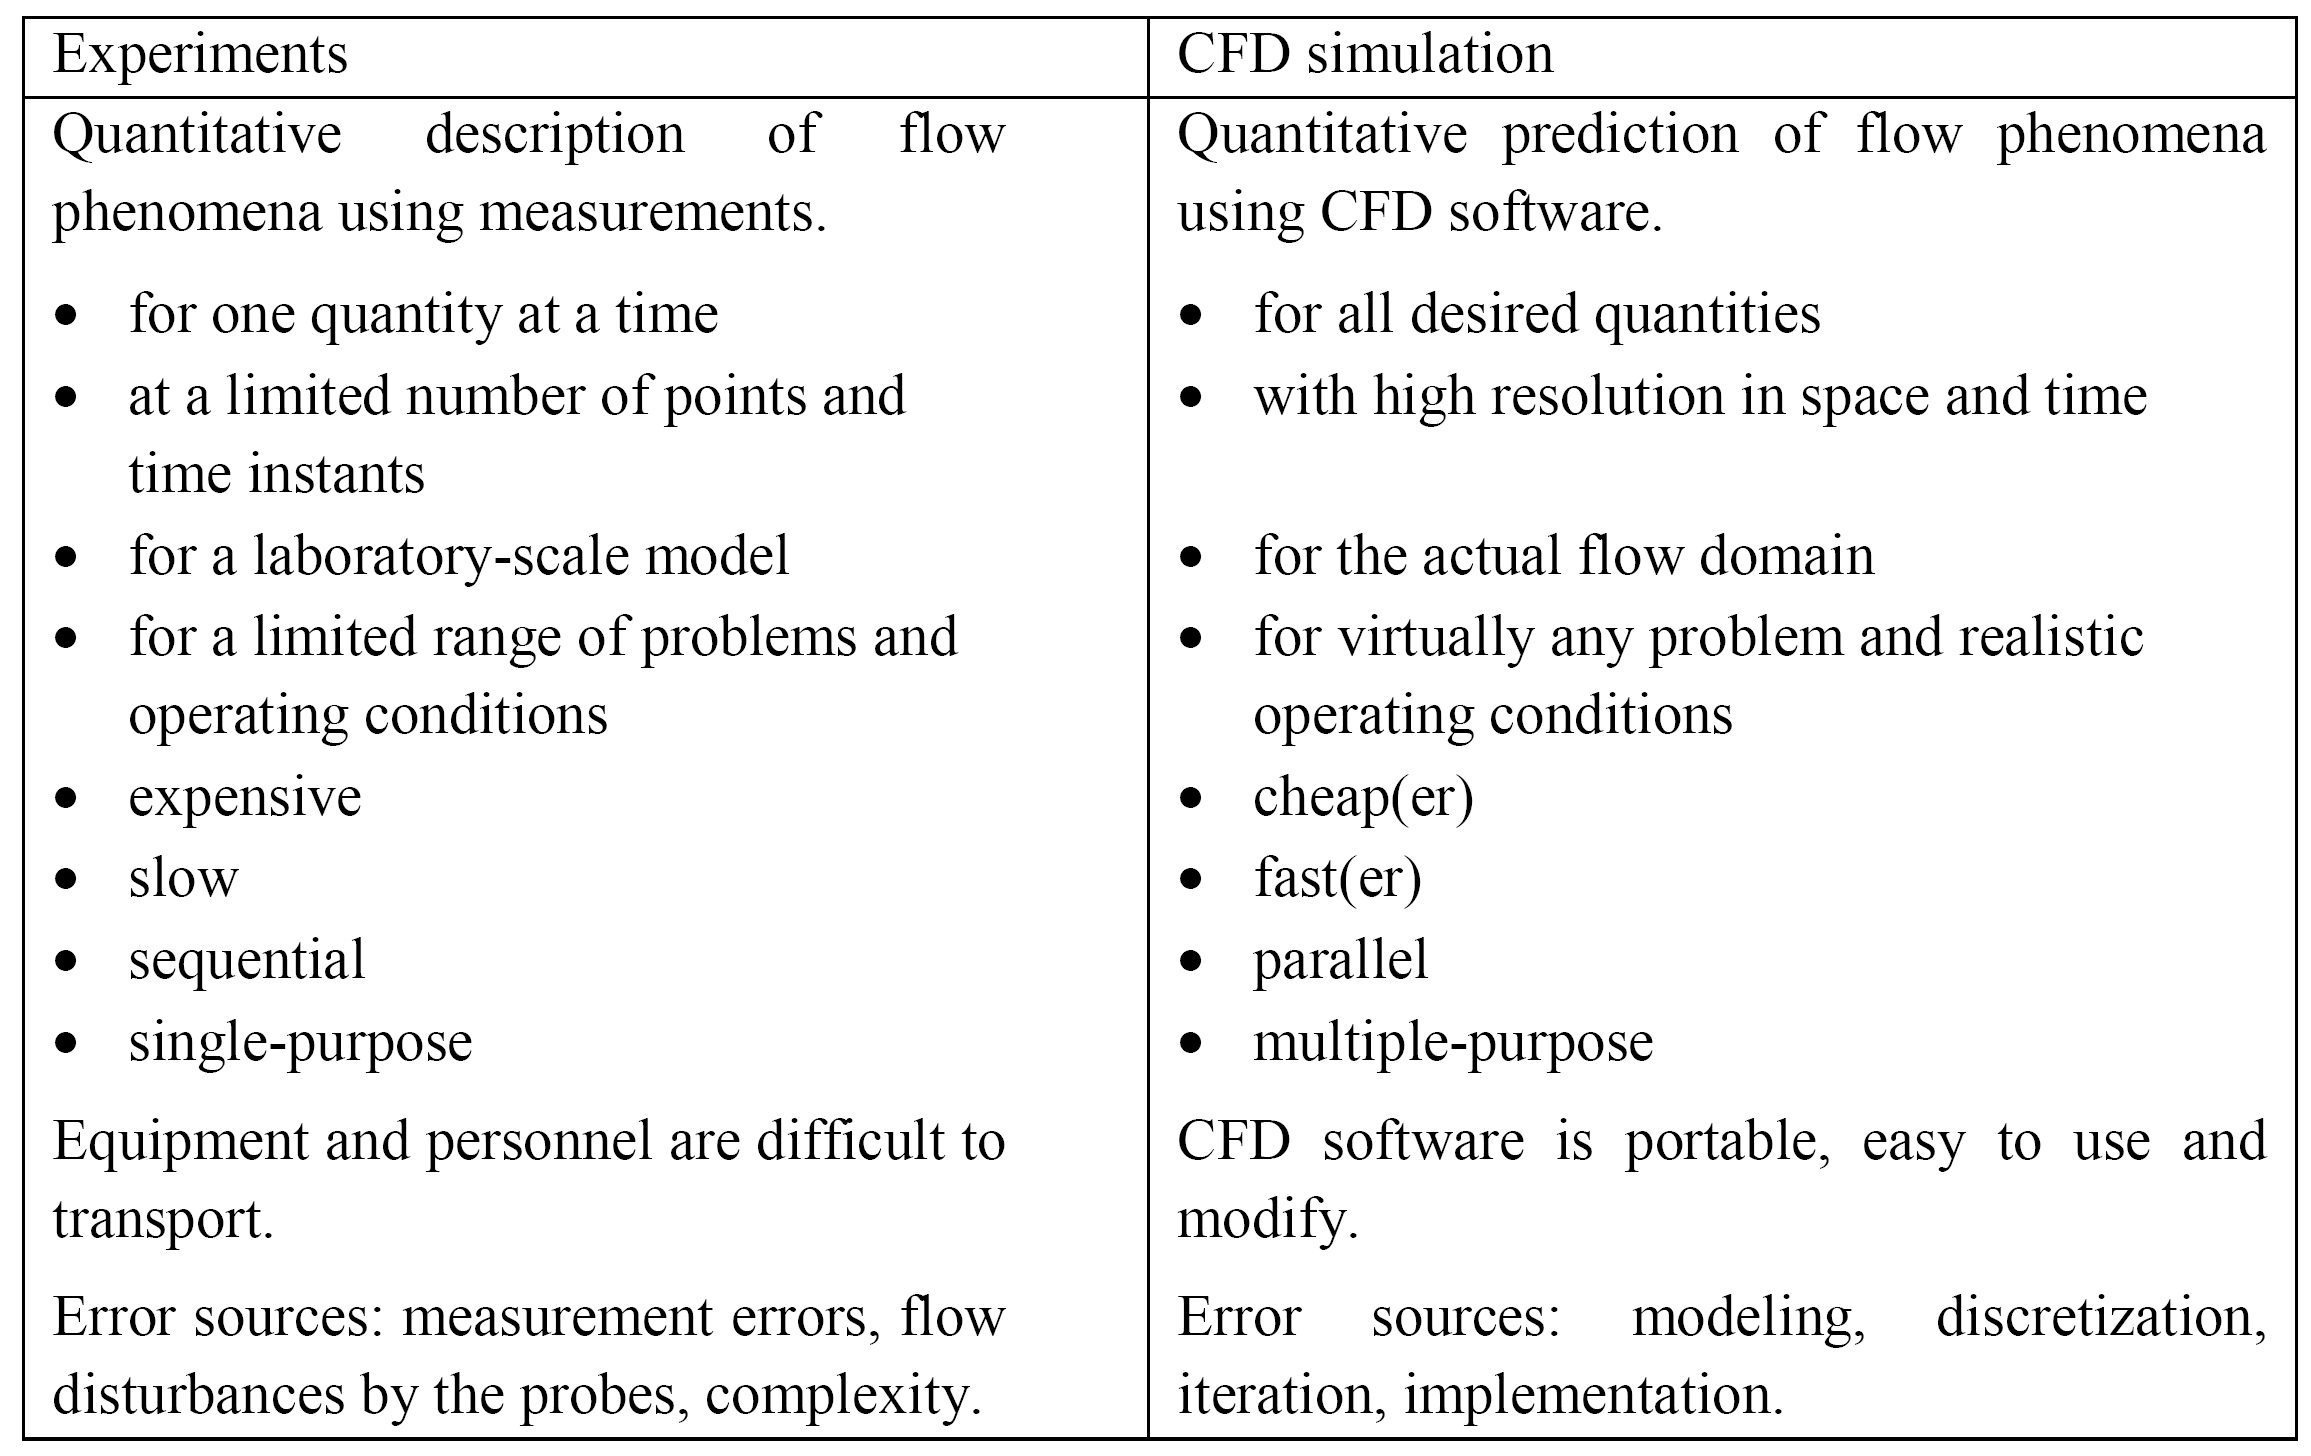 Table 1. Comparison of experiment and CFD simulation in engineering applications.